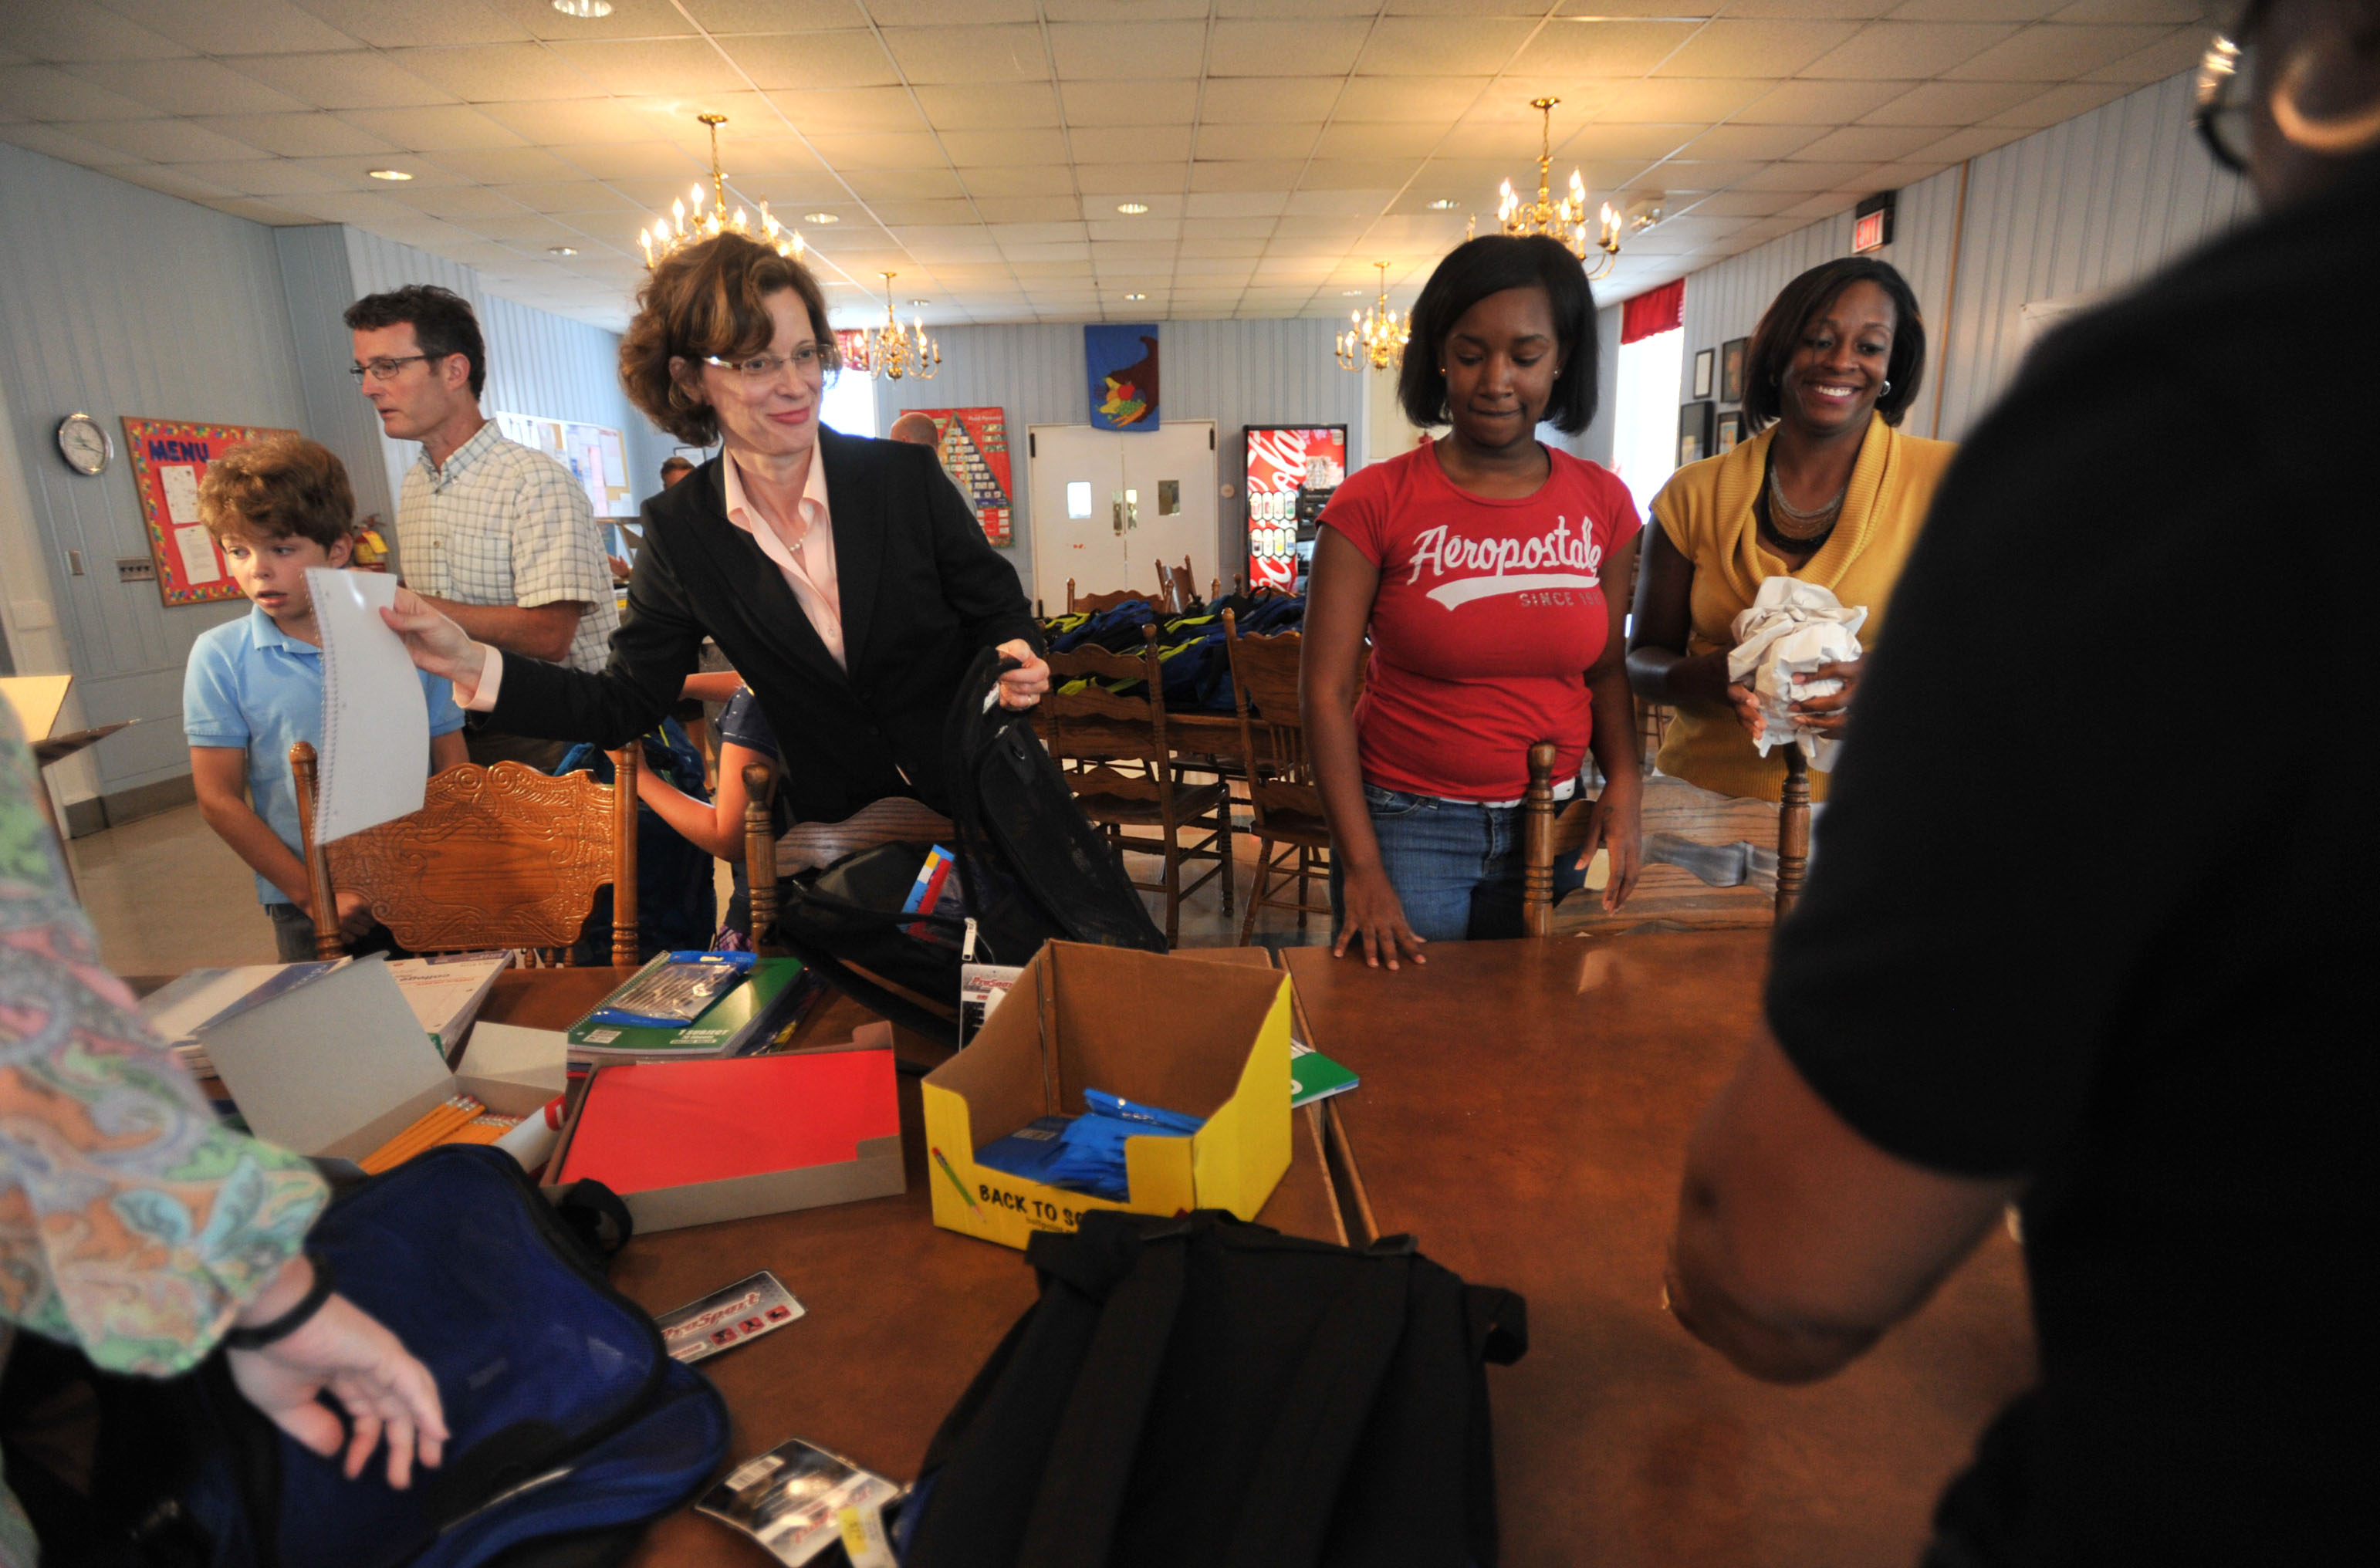 With the help of son, Vinson, left, and husband Ron, U. S. Senate candidate Michelle Nunn and other volunteers stuffed book bags with school supplies for residents of the Georgia Industrial Childrens Home, Aug. 7, 2013.